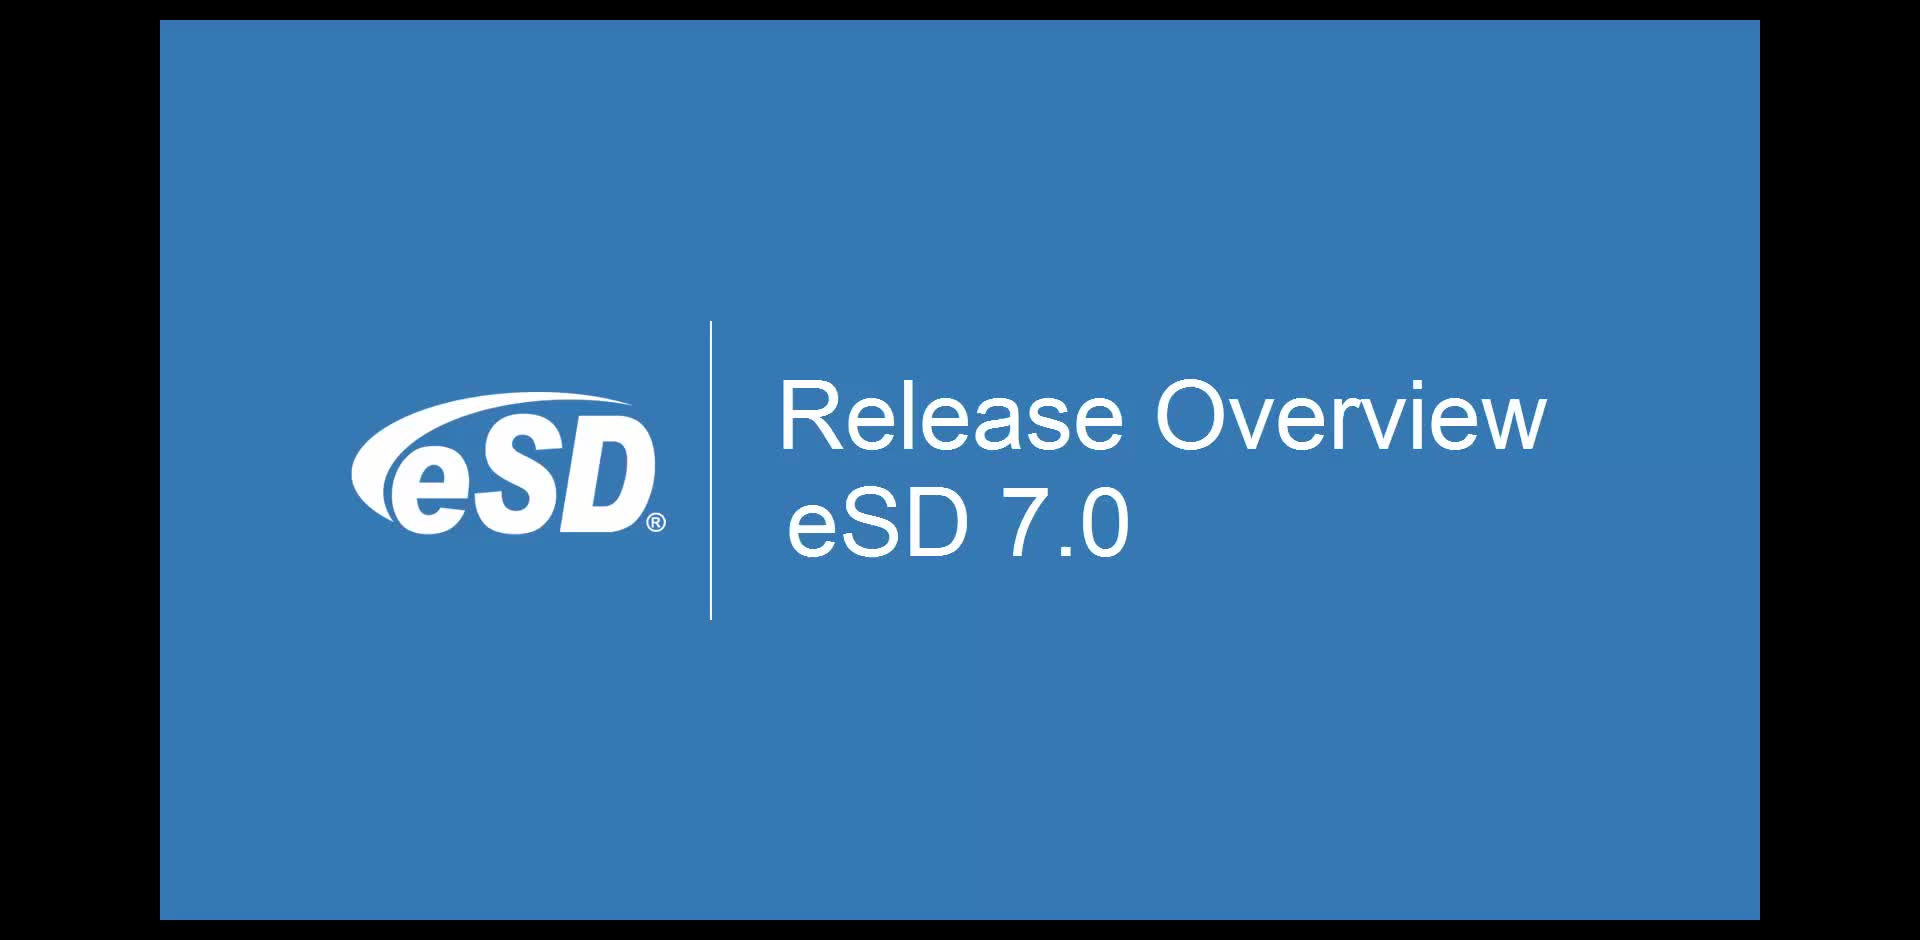 eSD 7.0 Release Overview